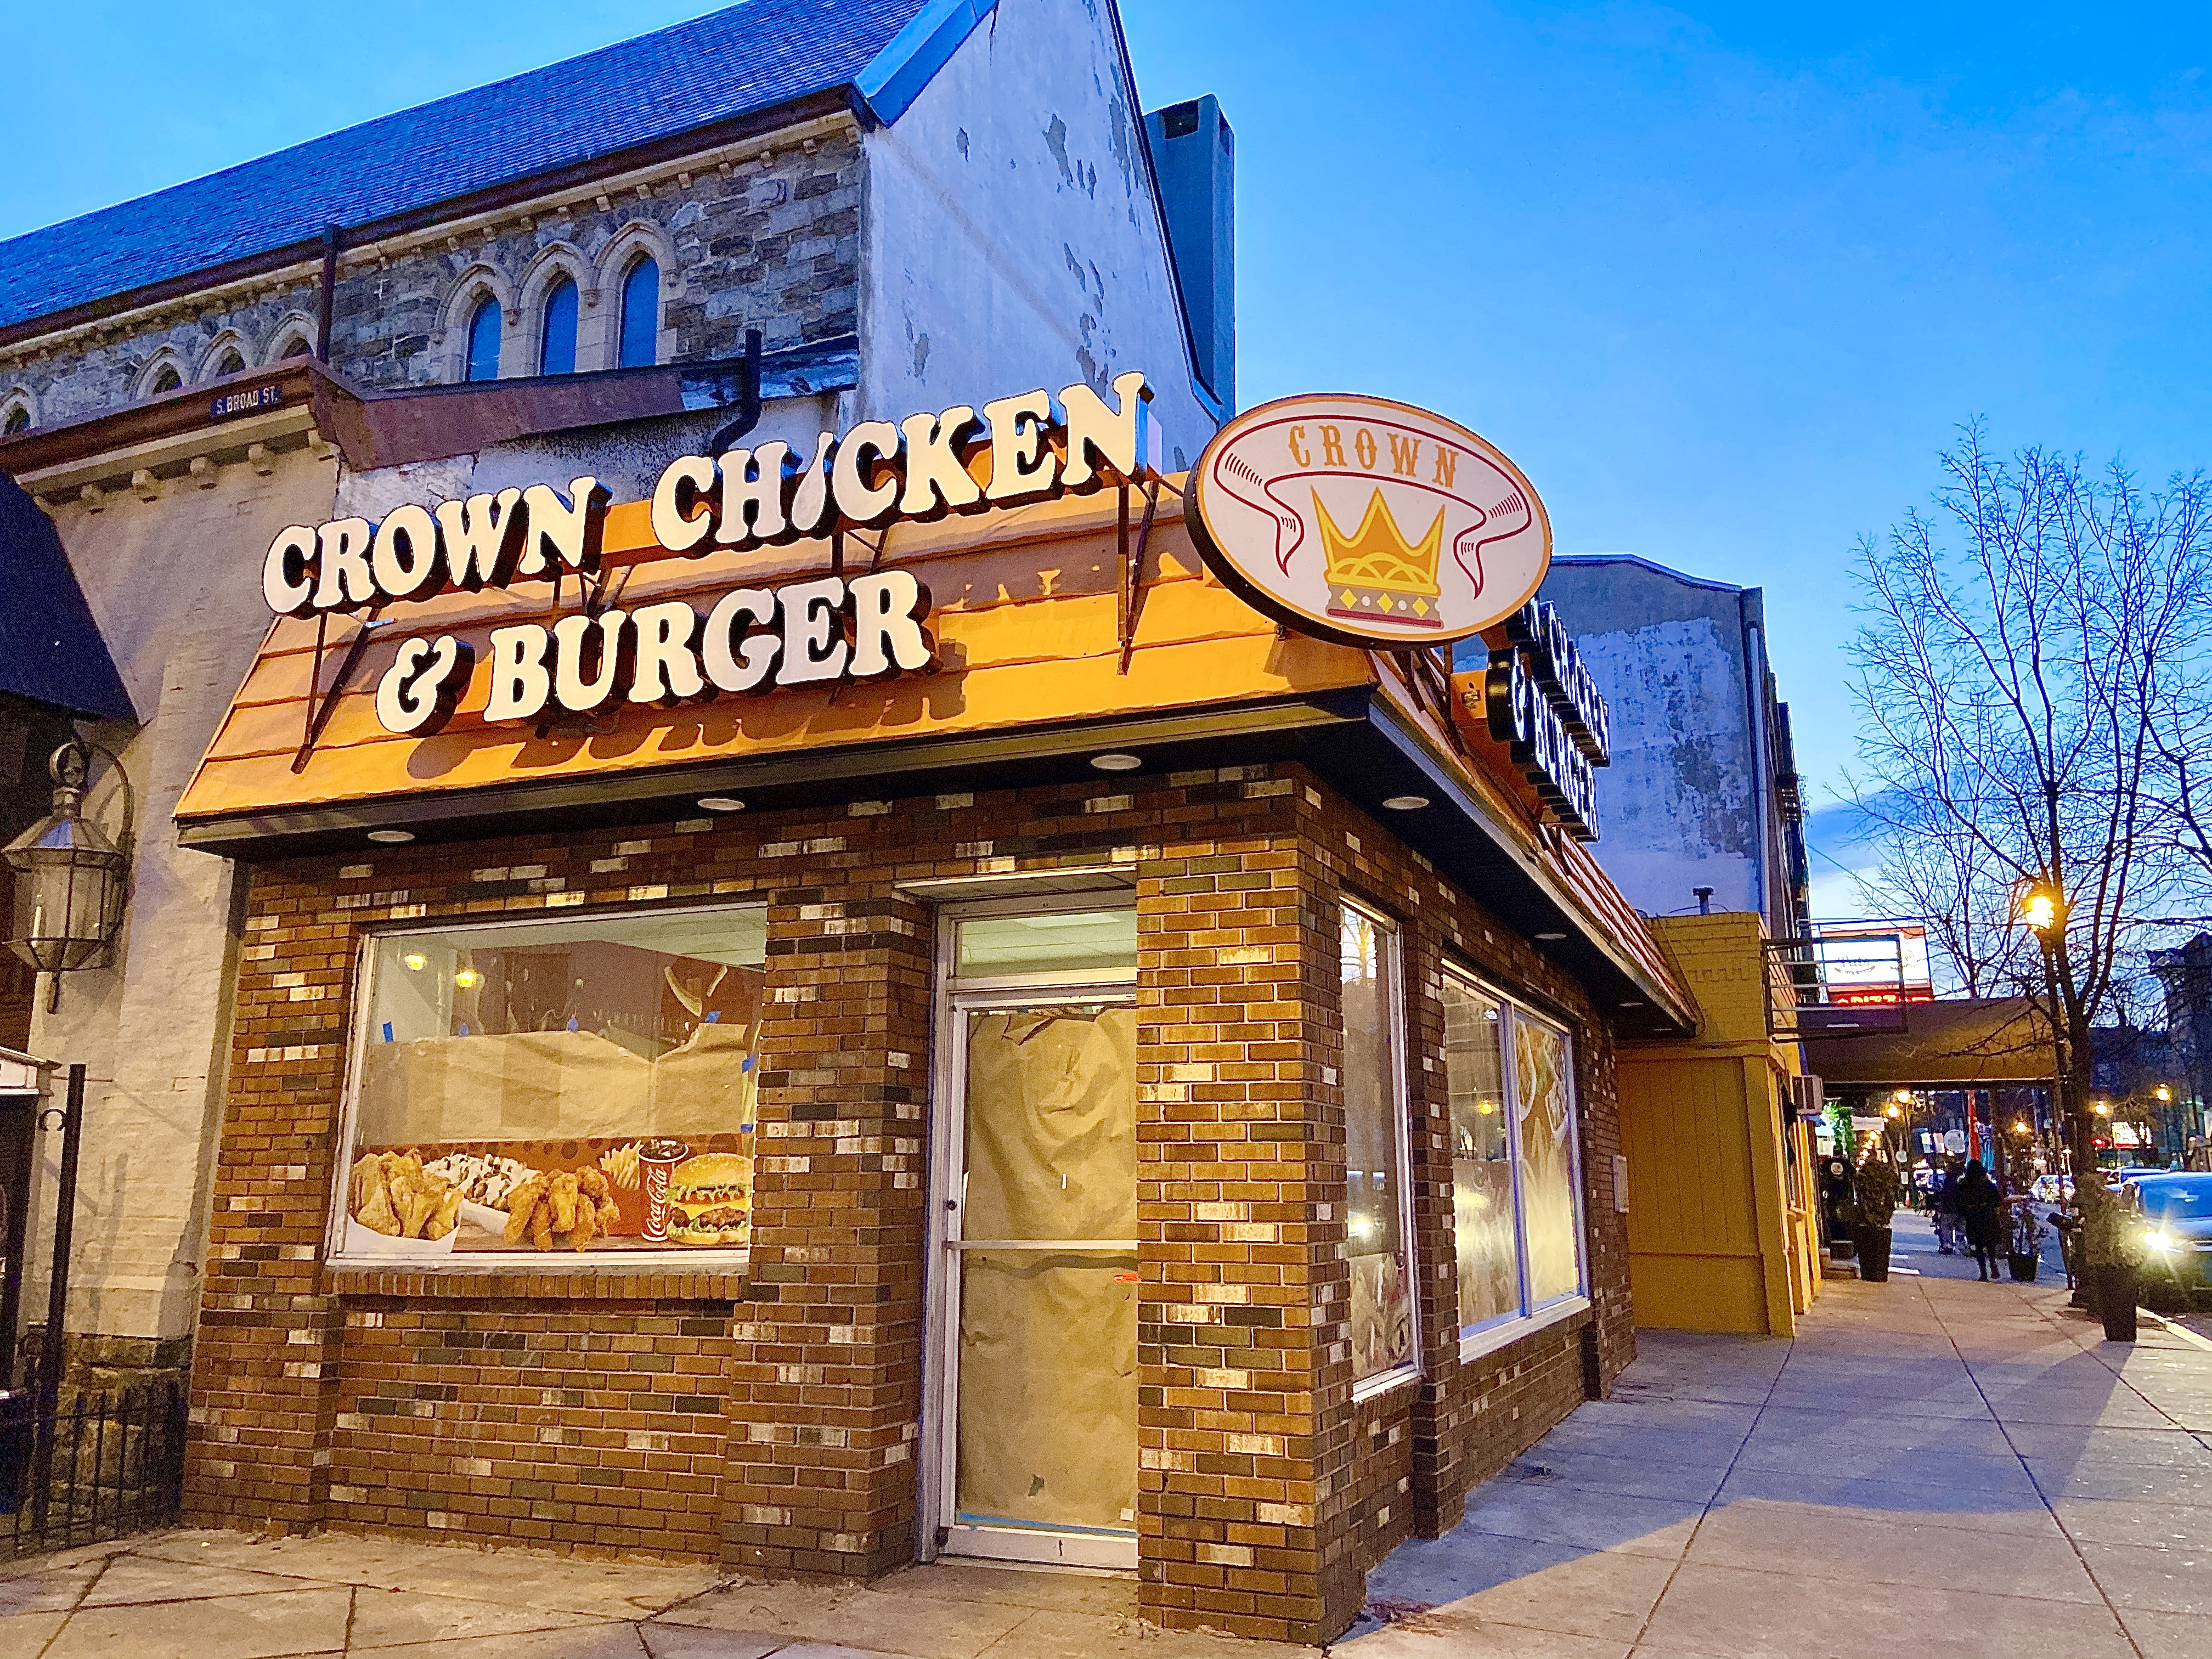 brick corner building with sign that says crown chicken and burger